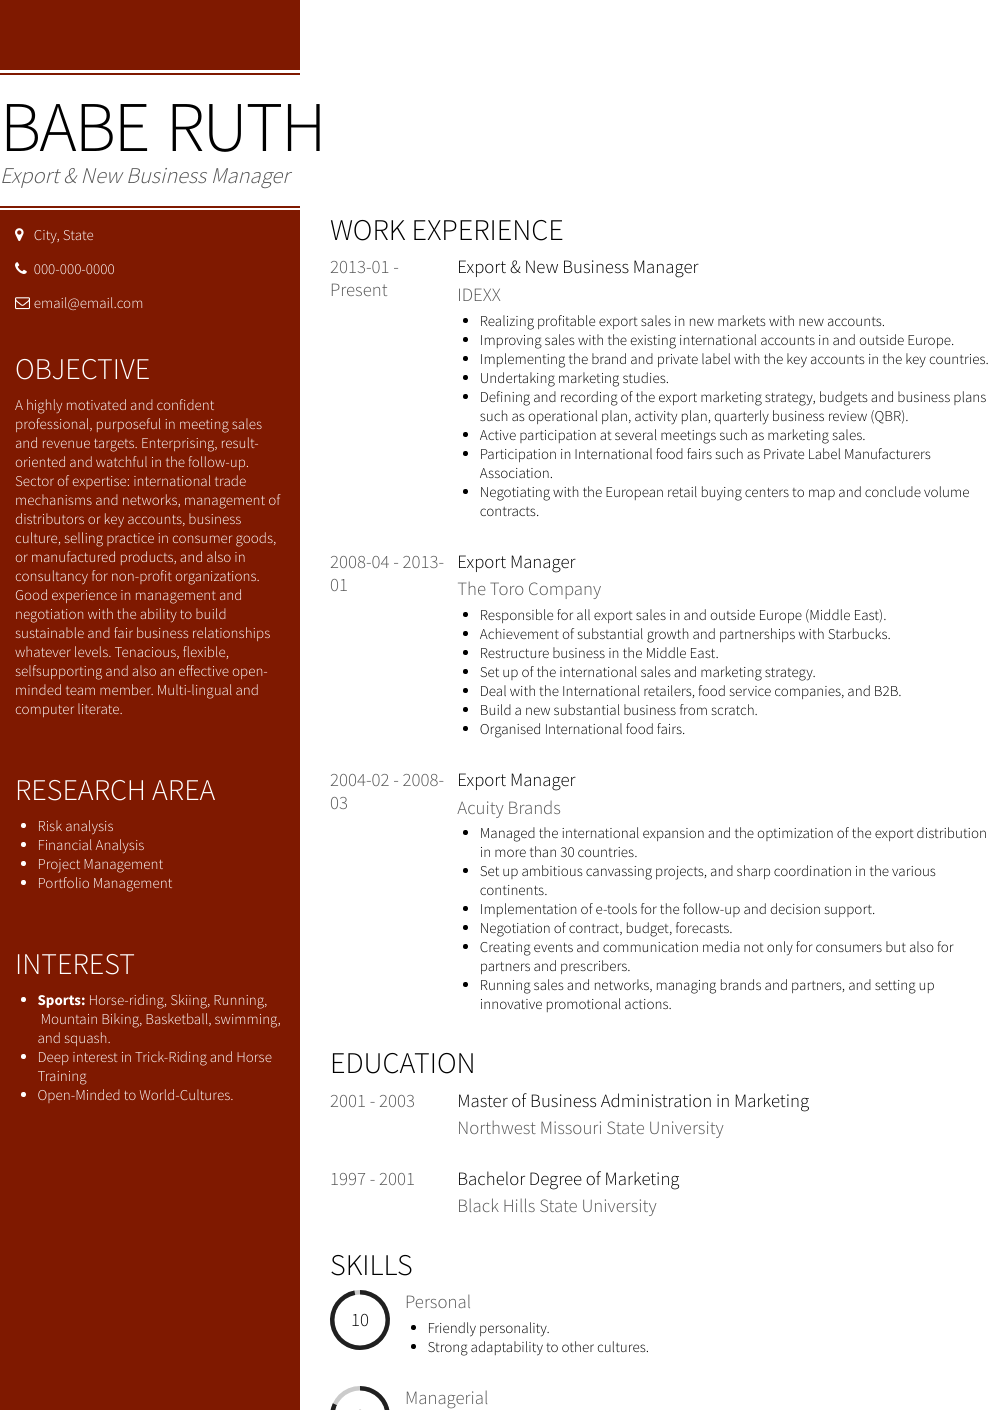 Export & New Business Manager Resume Sample and Template